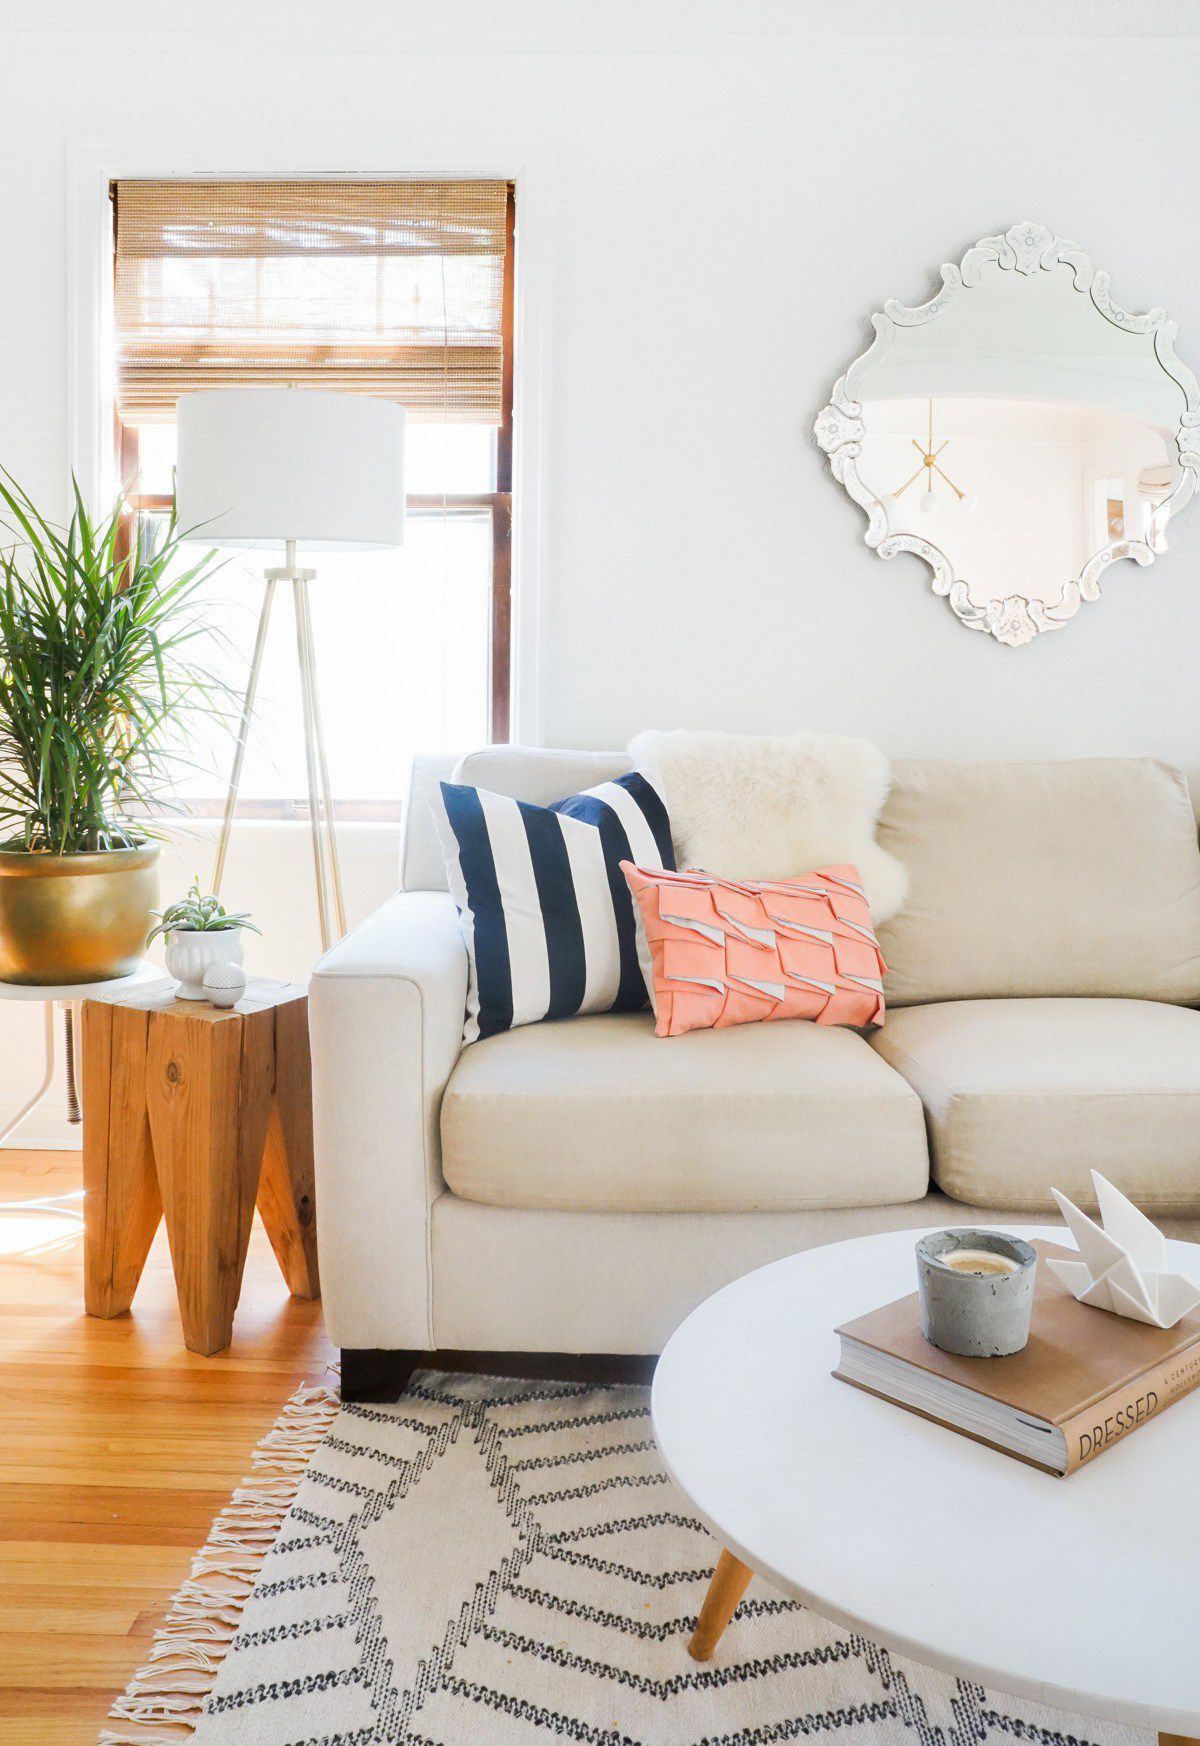 50 Diy Ideas For The Living Room